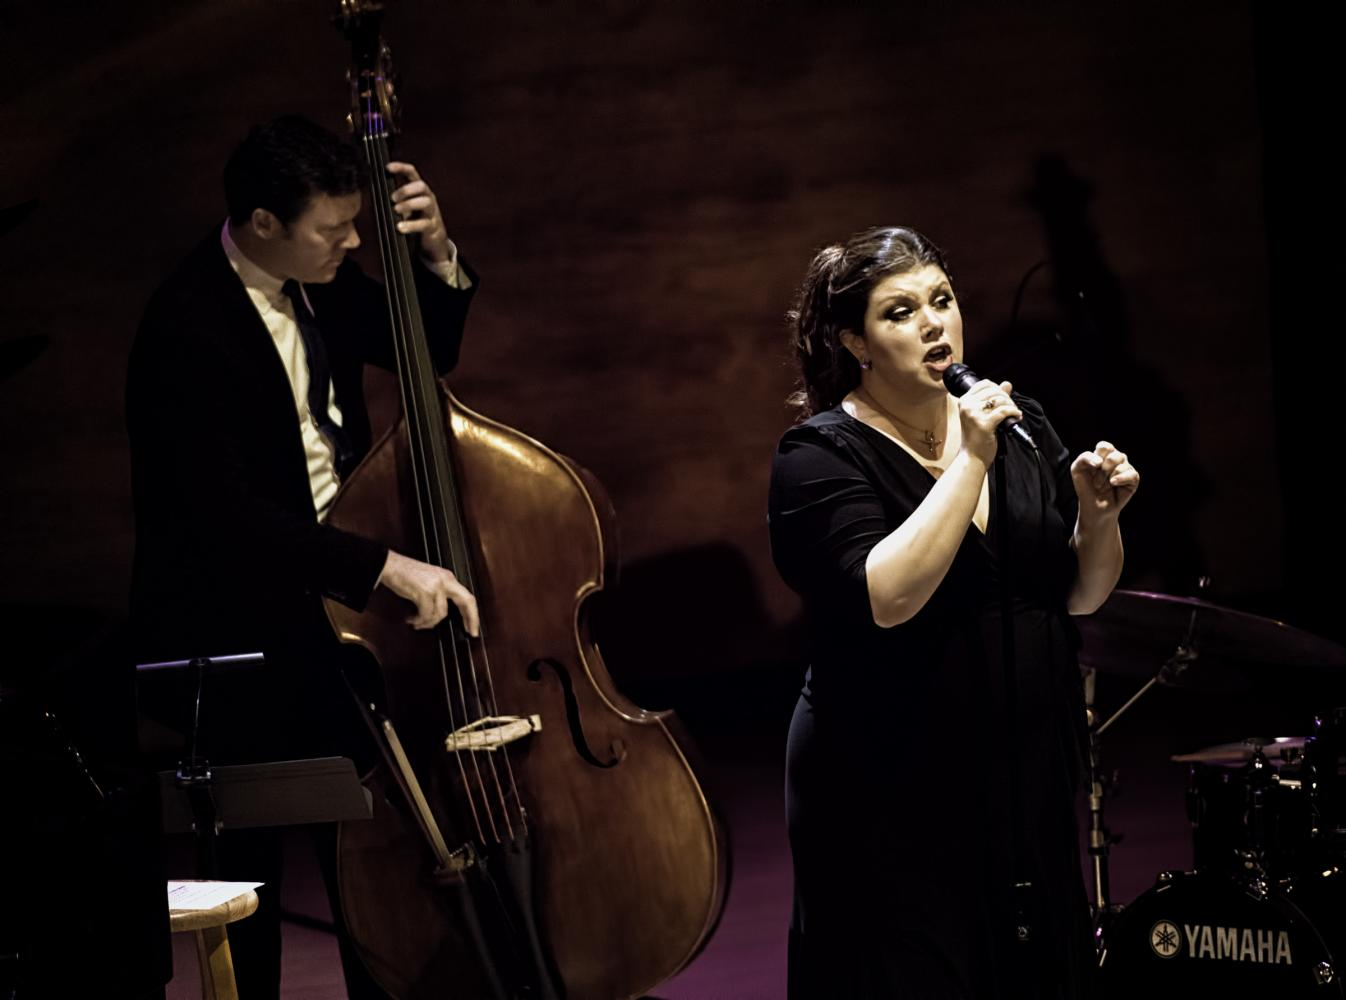 Jane Monheit And Neal Miner At The Musical Instrument Museum (mim) In Phoenix